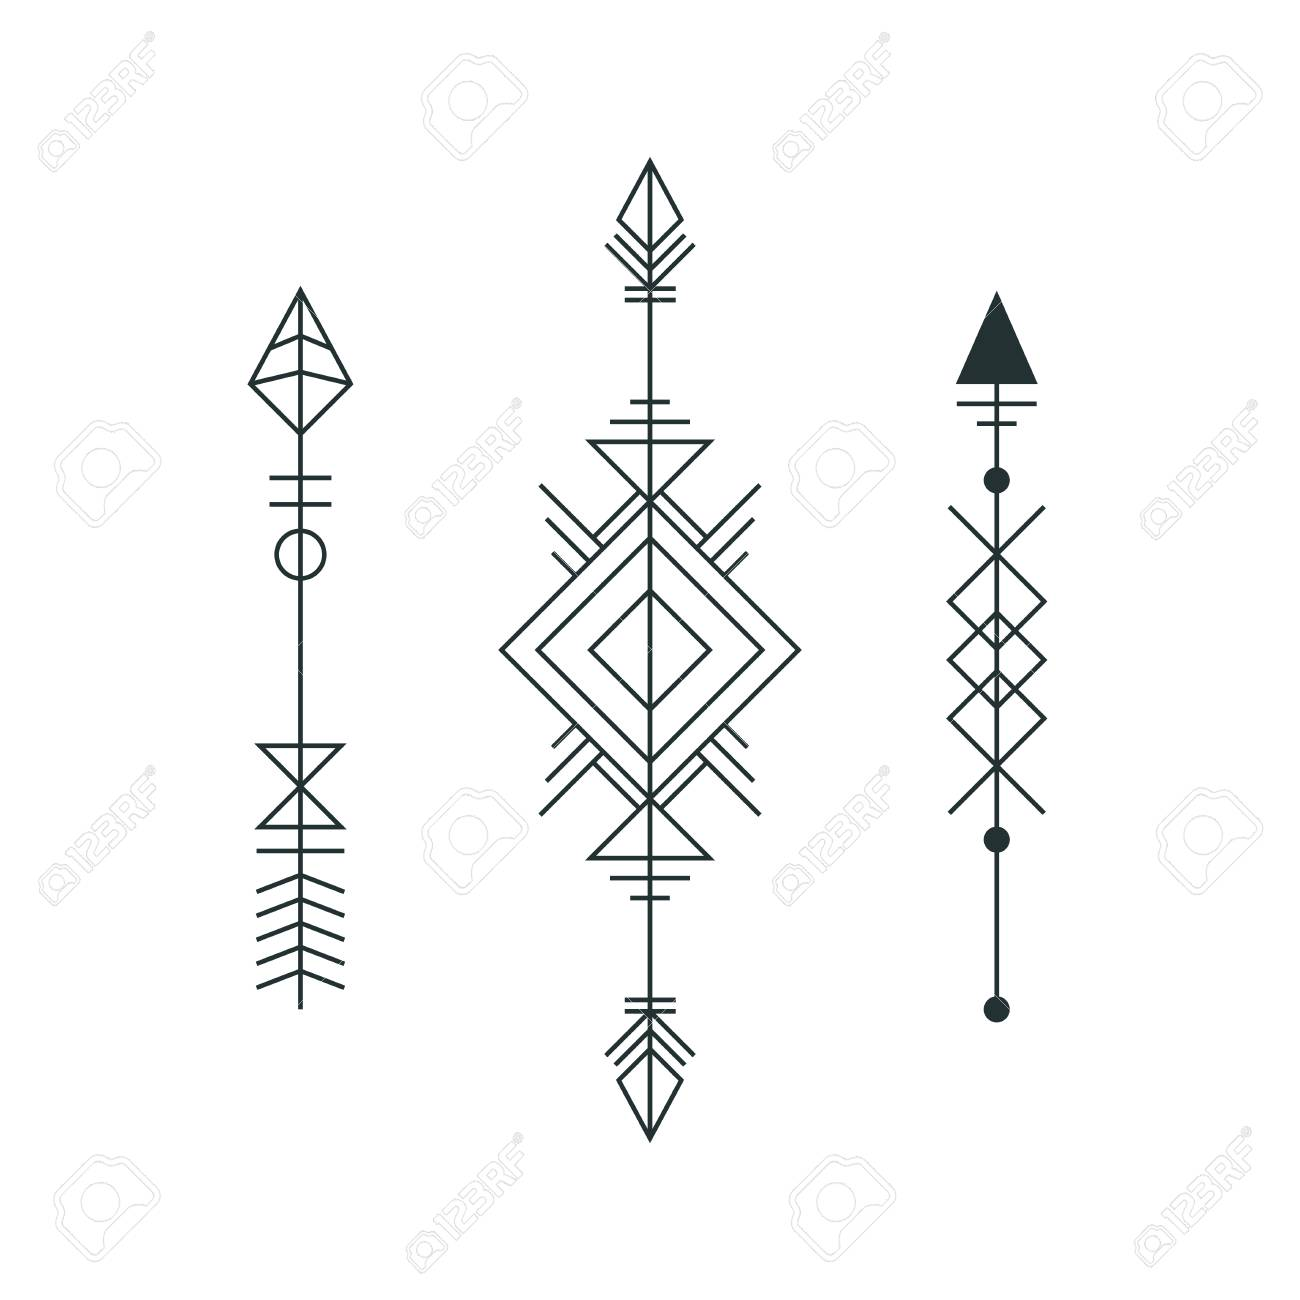 Set Of Graphic Arrows For Tattoo Design Vector Minimalism Geometry